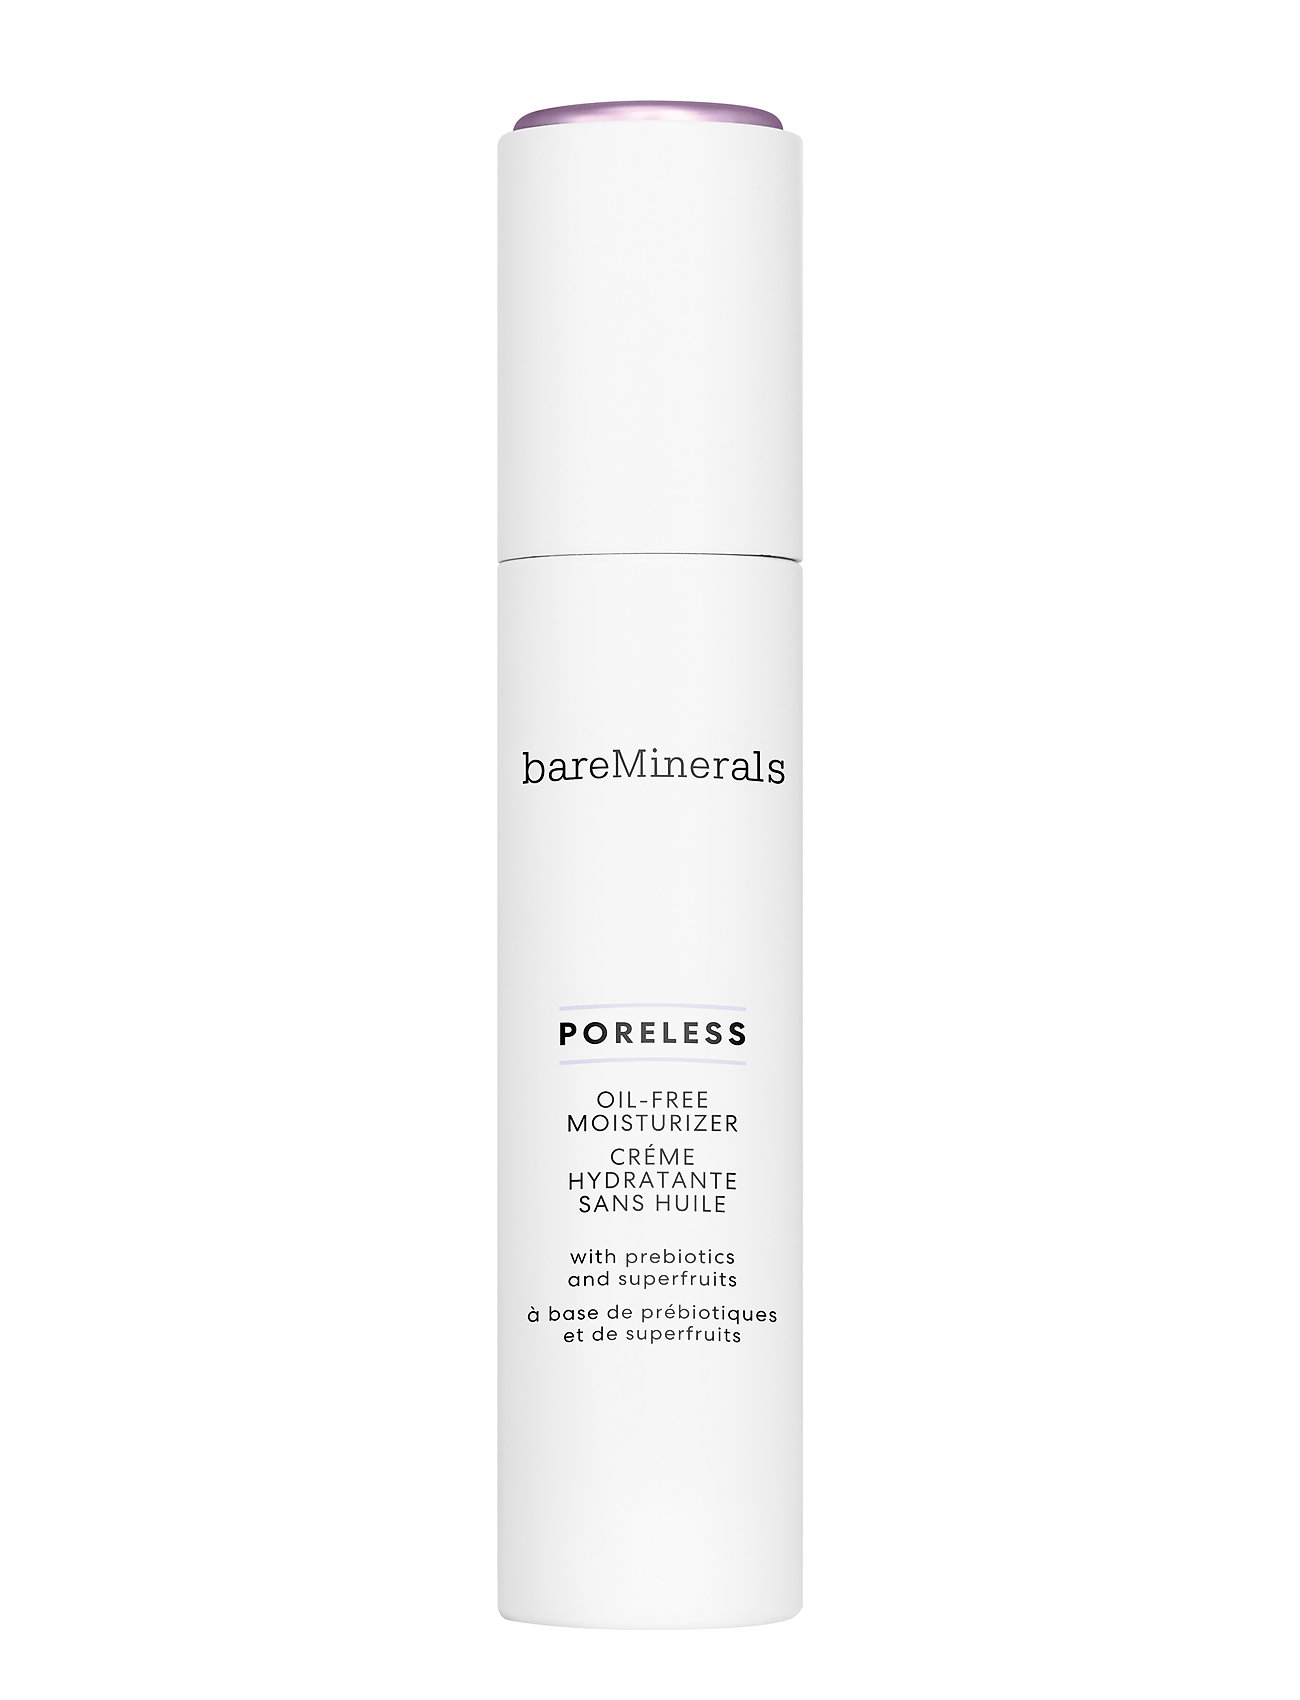 Image of Poreless Oil-Free Mosituirzer Beauty WOMEN Skin Care Face Day Creams Nude BareMinerals (3292990309)